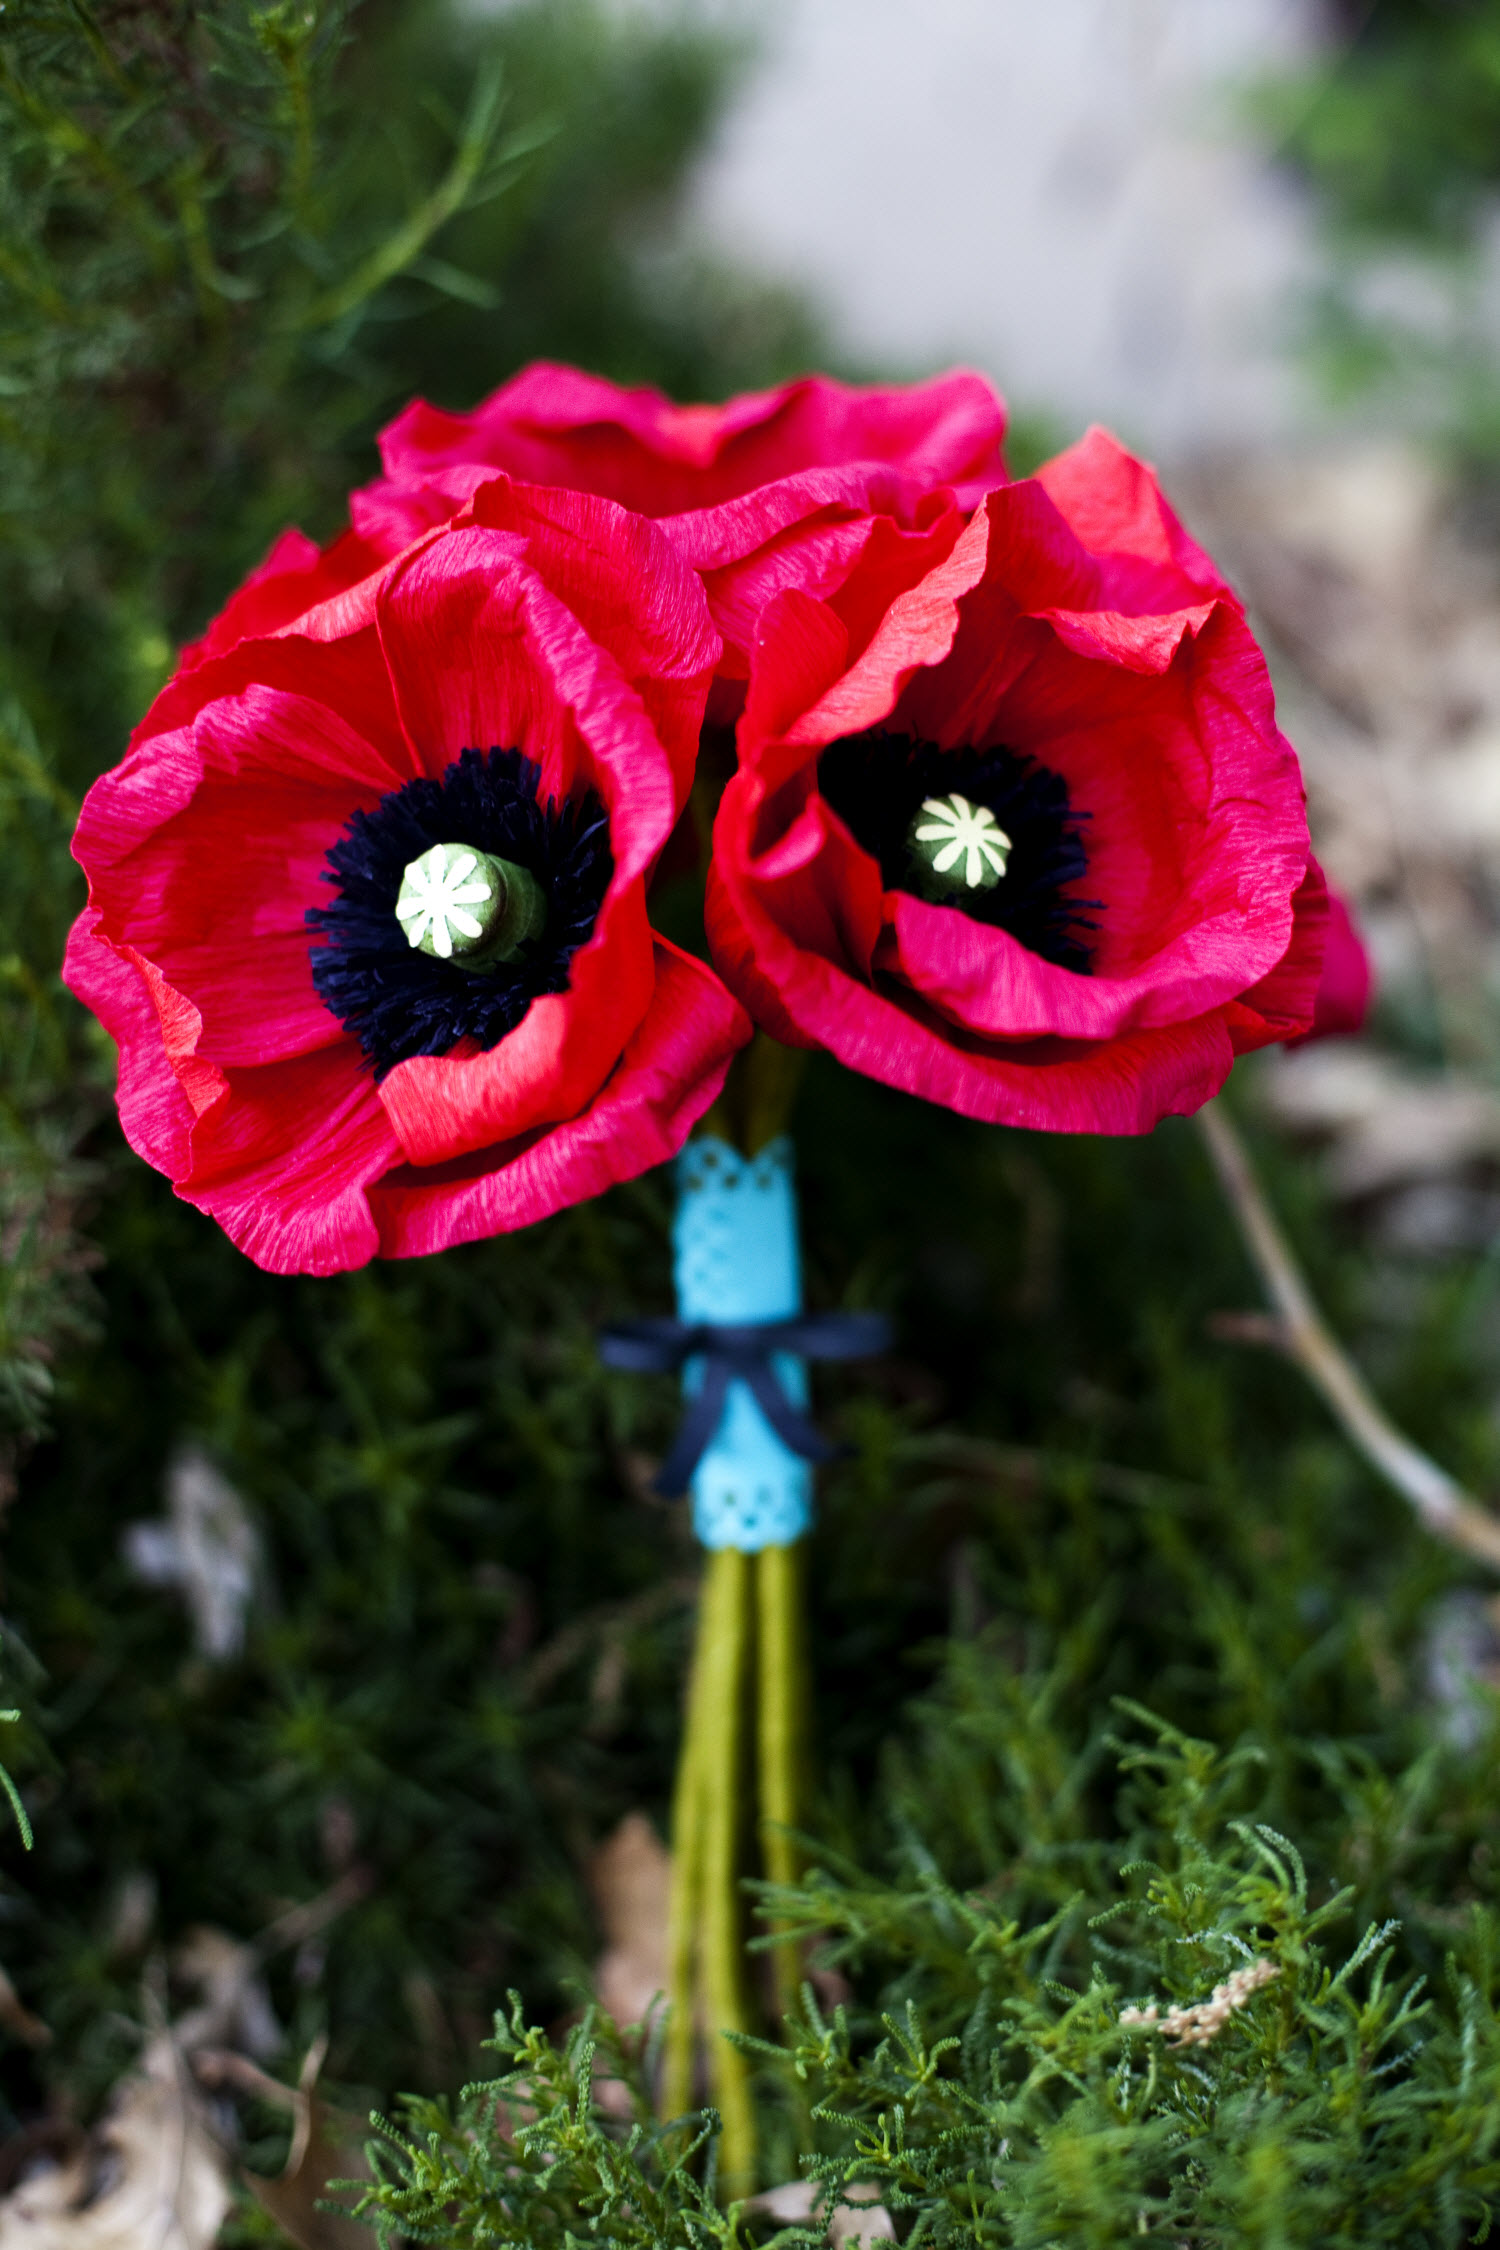 bright red and black poppy bridal bouquet made from handmade paper wedding flowers. Black Bedroom Furniture Sets. Home Design Ideas